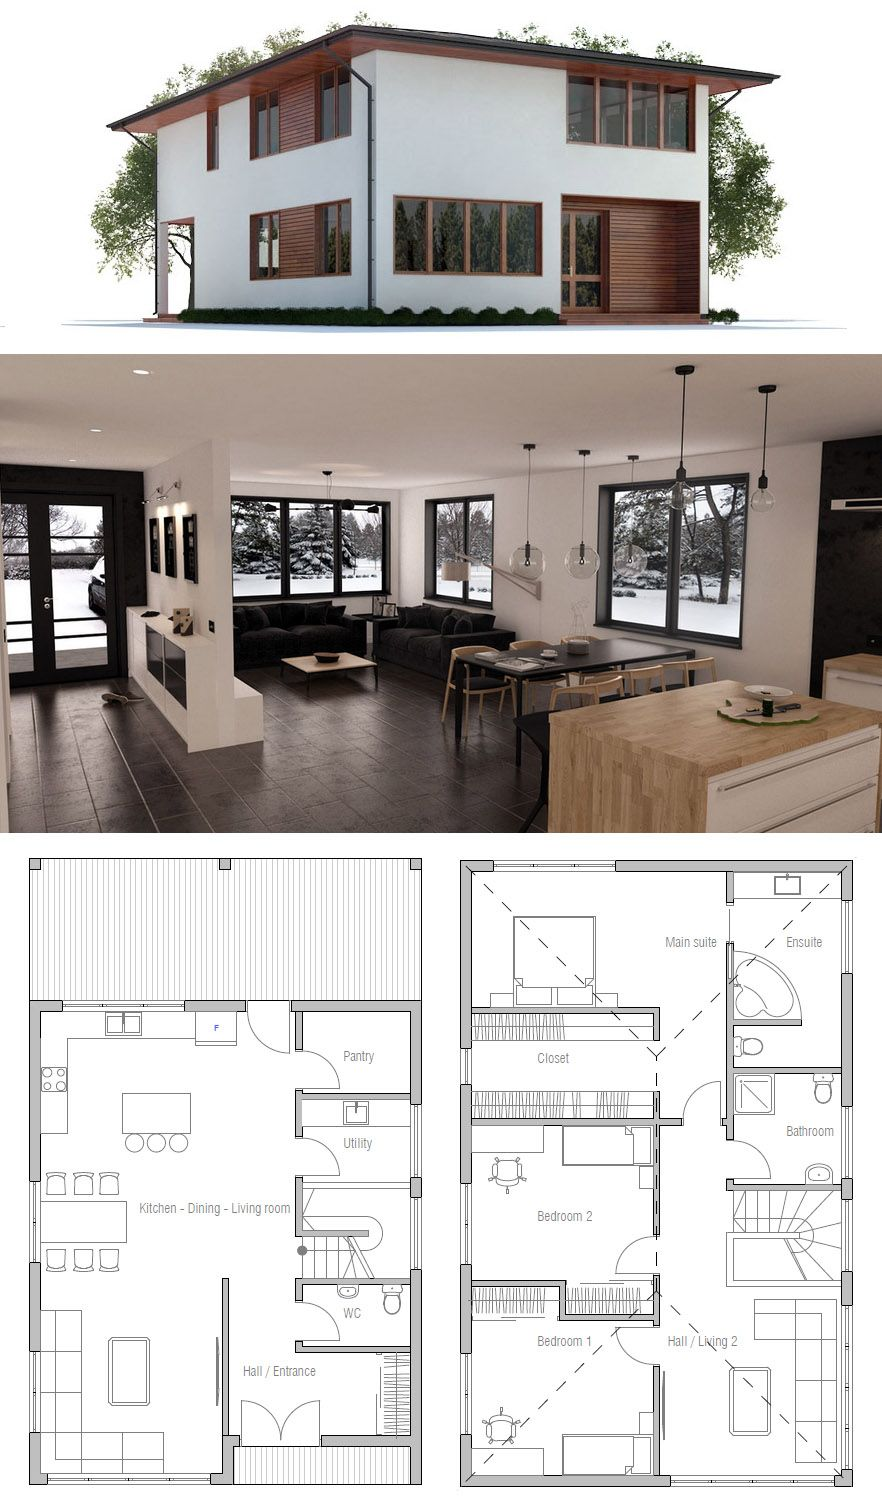 House plan ch also best plans images in rh pinterest